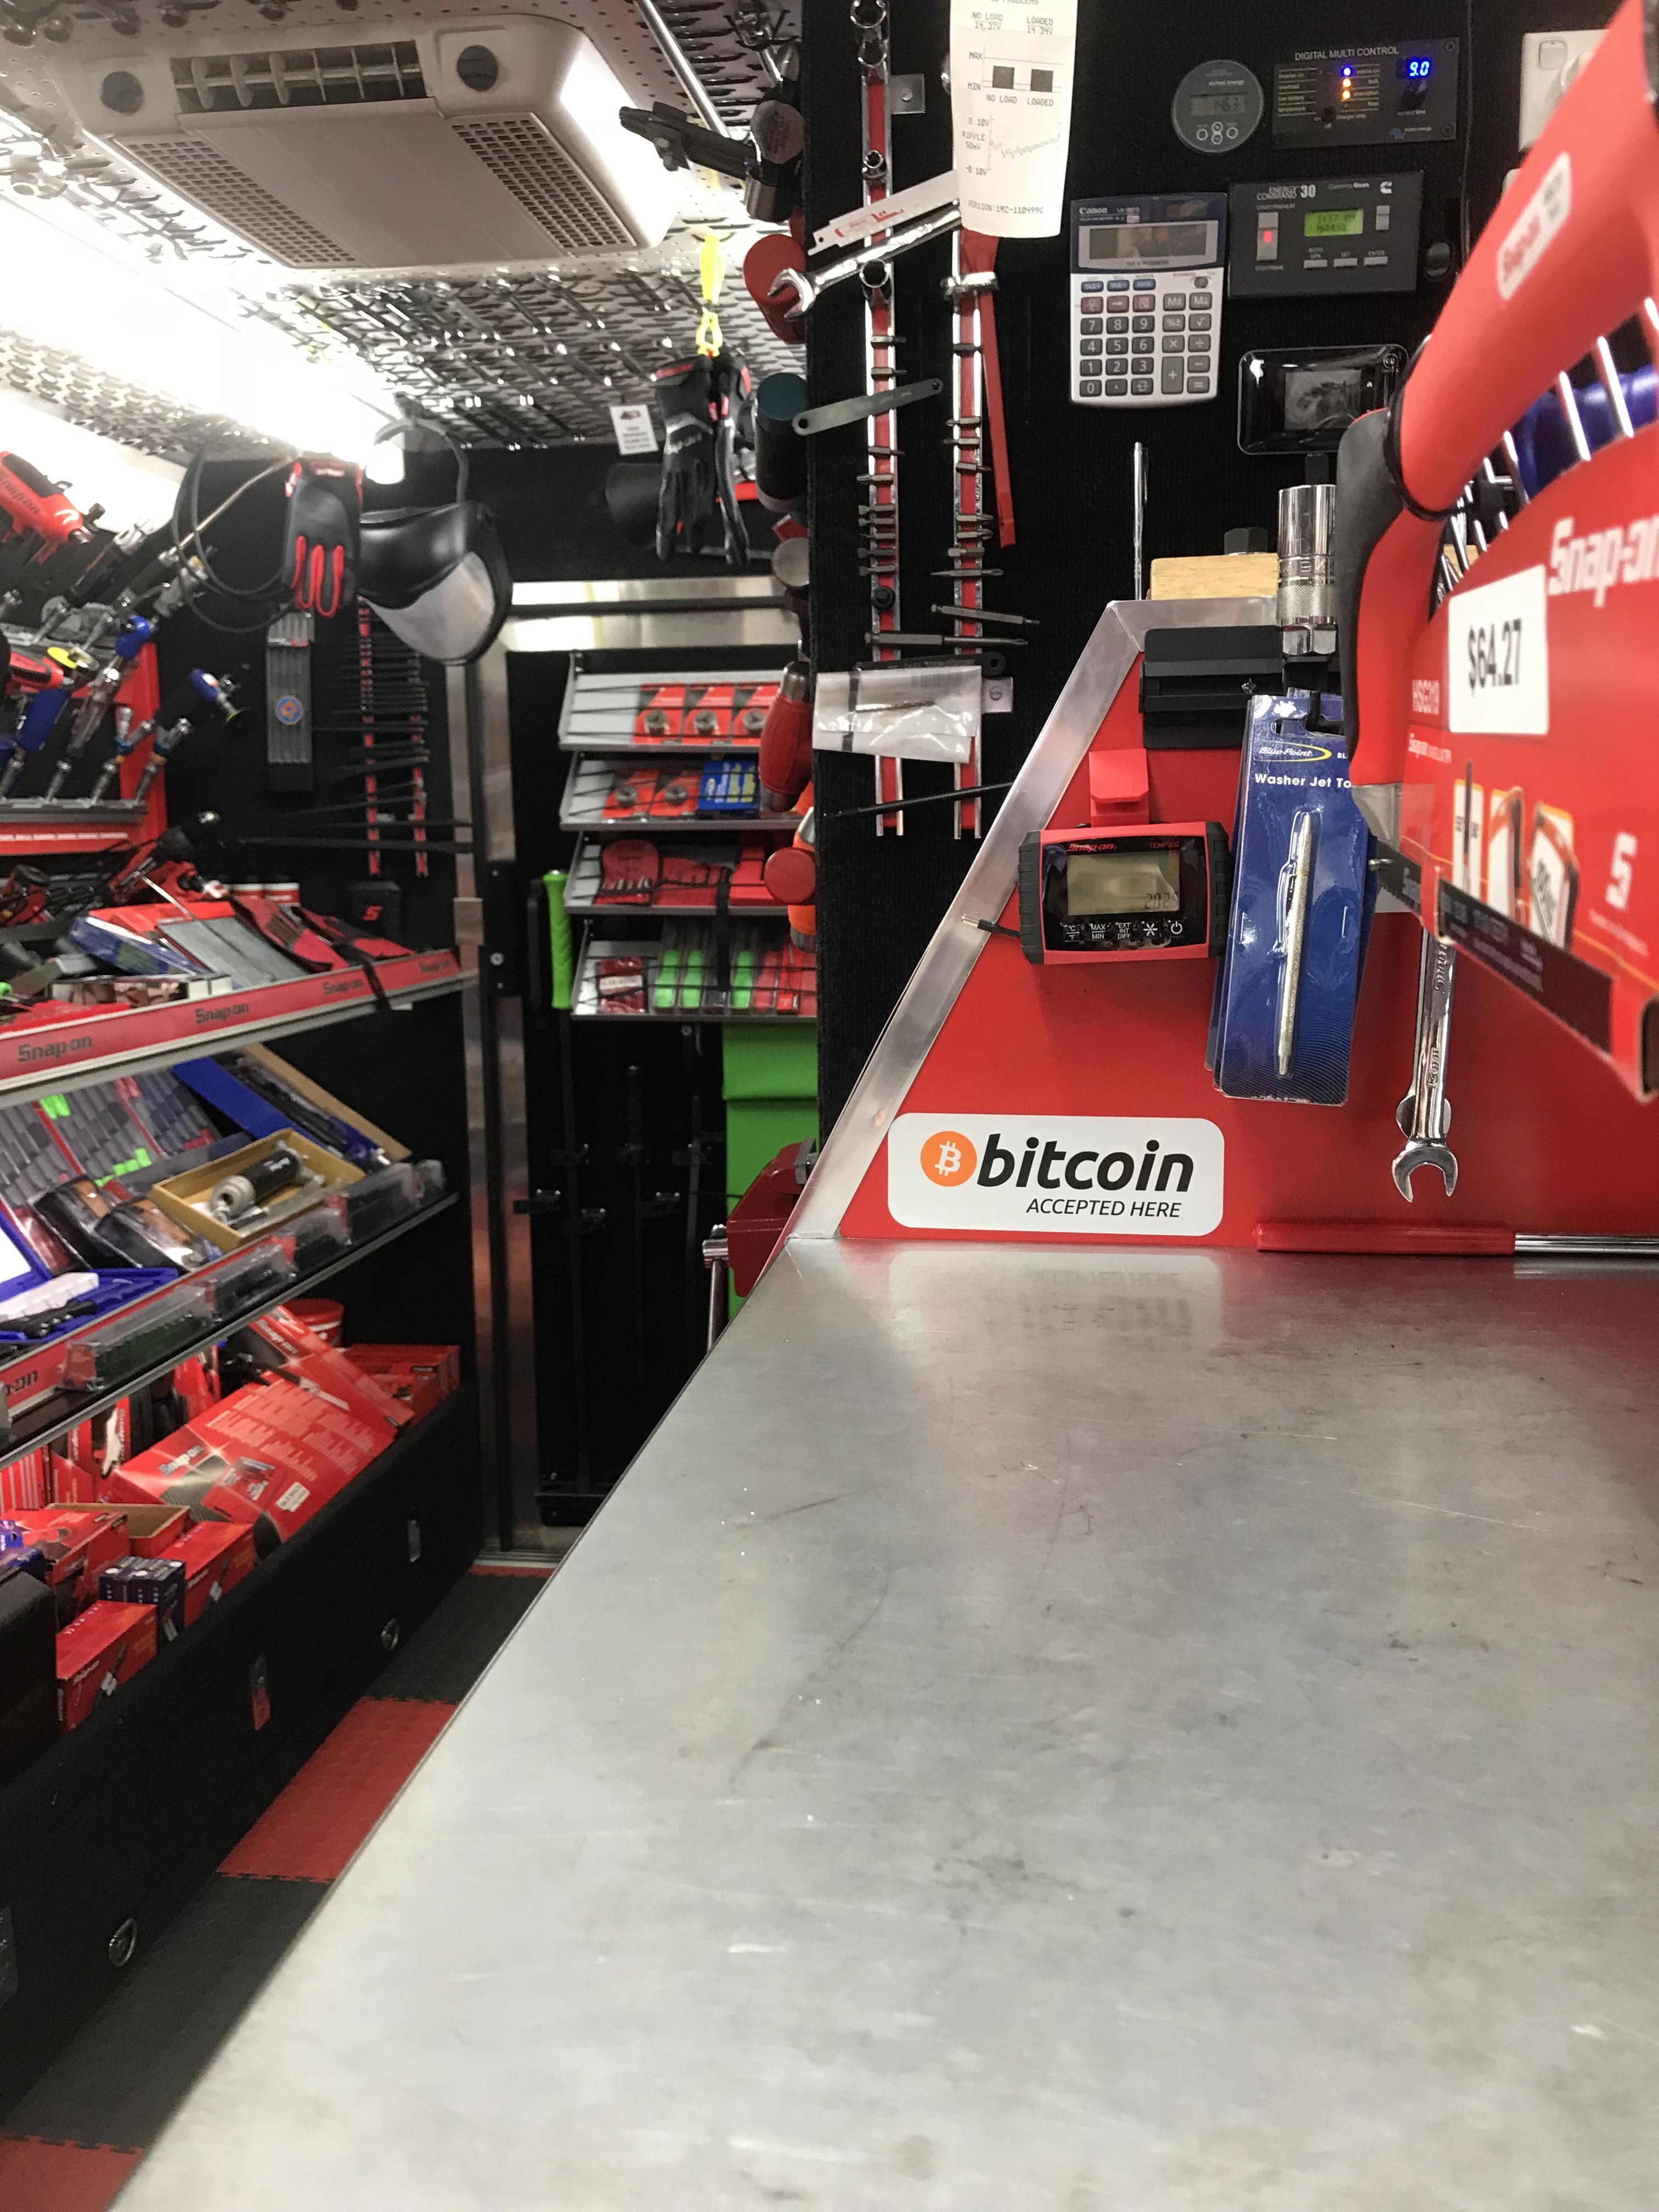 Snap On Truck : truck, Local, Tools, Truck, Australia, Accepting, Bitcoins!, Bitcoin